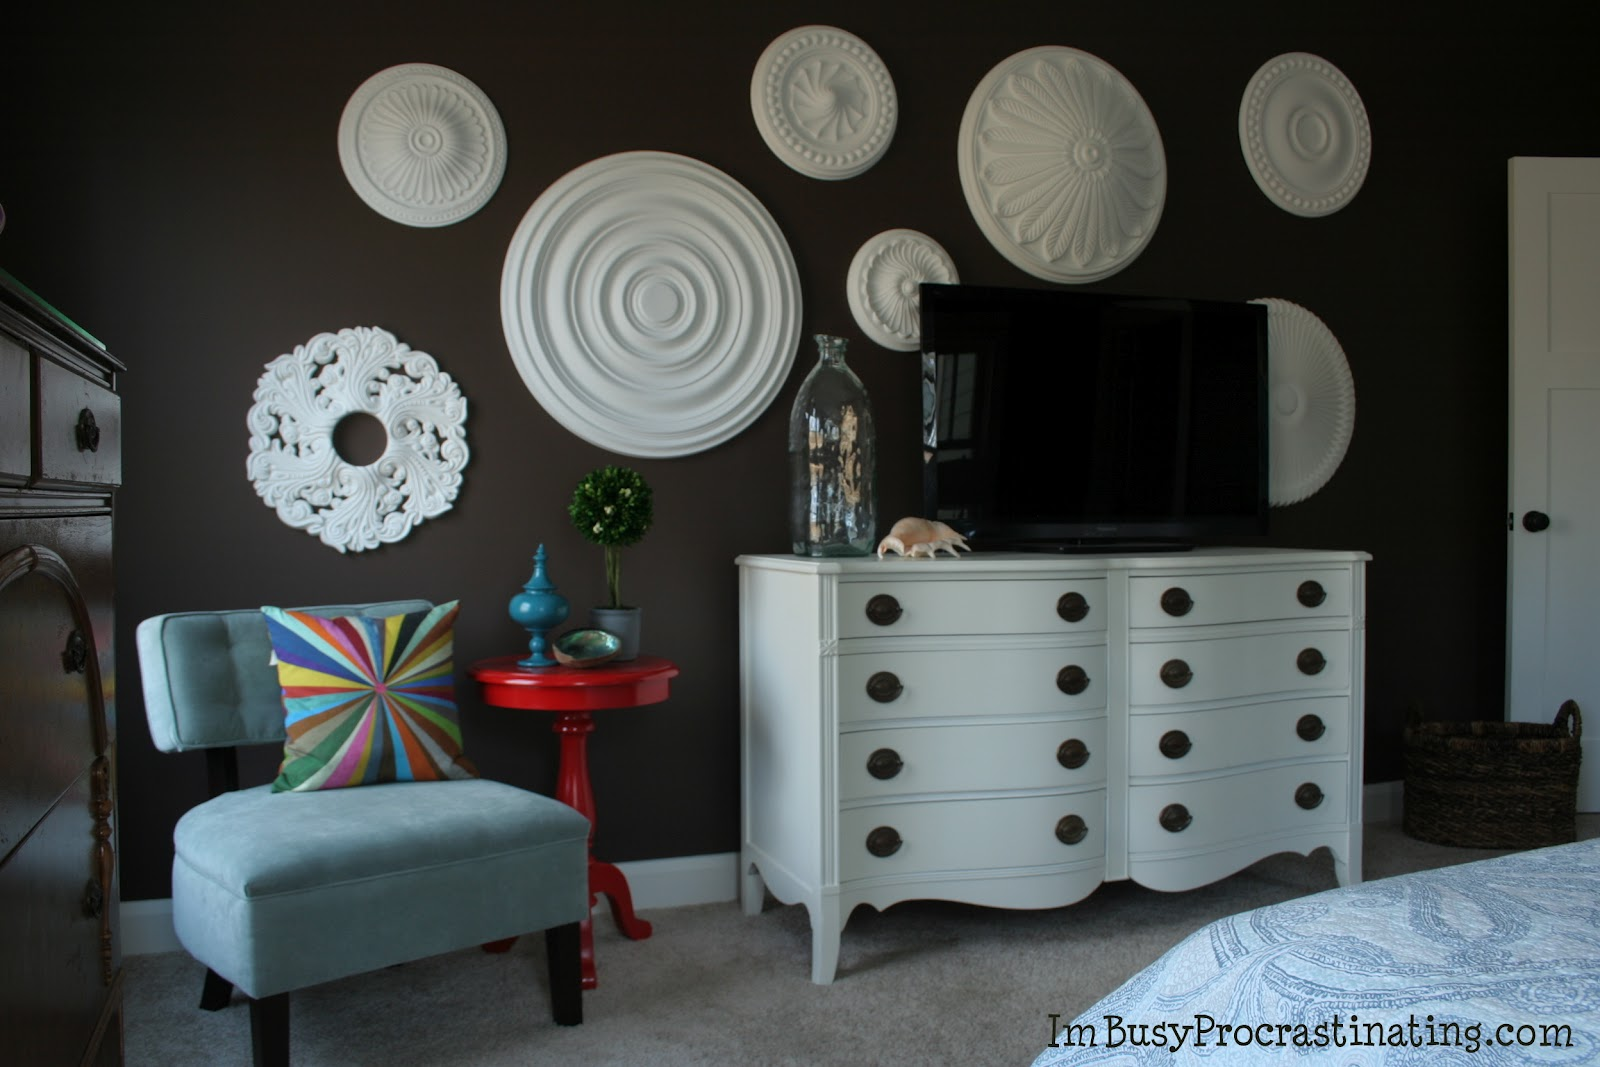 Stuck On Hue Ceiling Medallions Make A Big Statement As